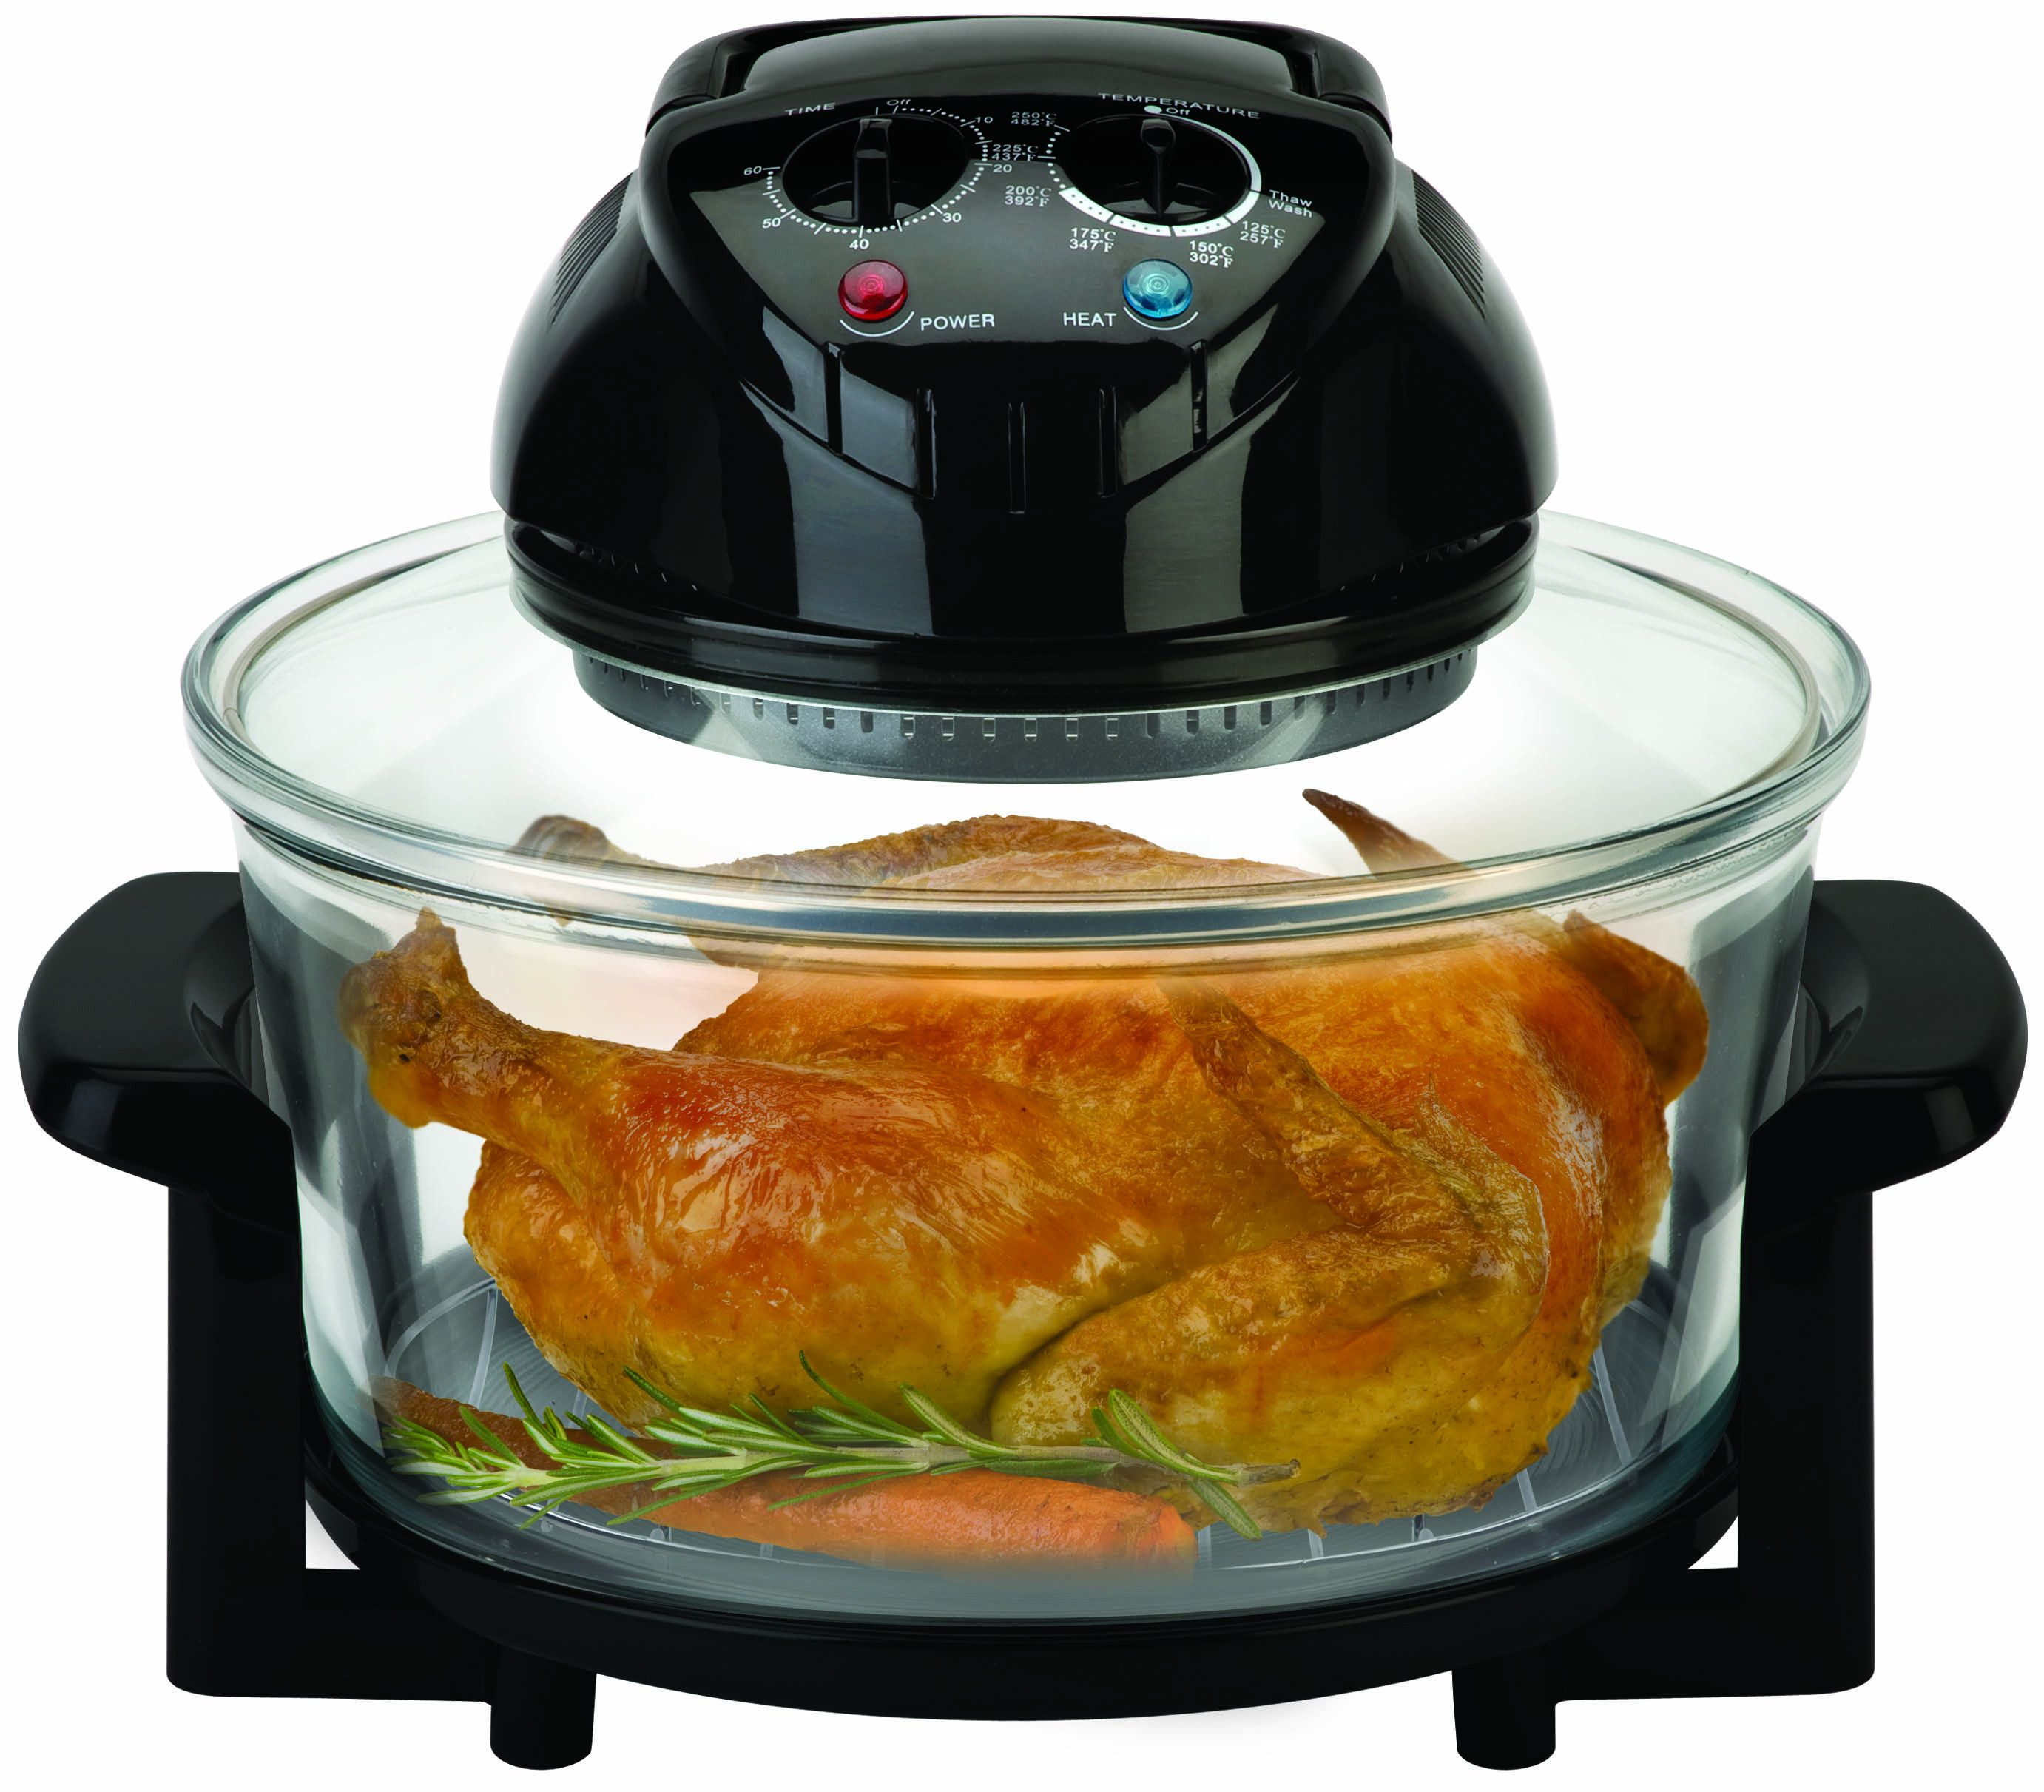 78 00 Big Boss Rapid Wave Oven Walmart Ca 3 Cooking Elements Halogen Directly Heats The Surface Of The Countertop Oven Convection Oven Recipes Oven Reviews